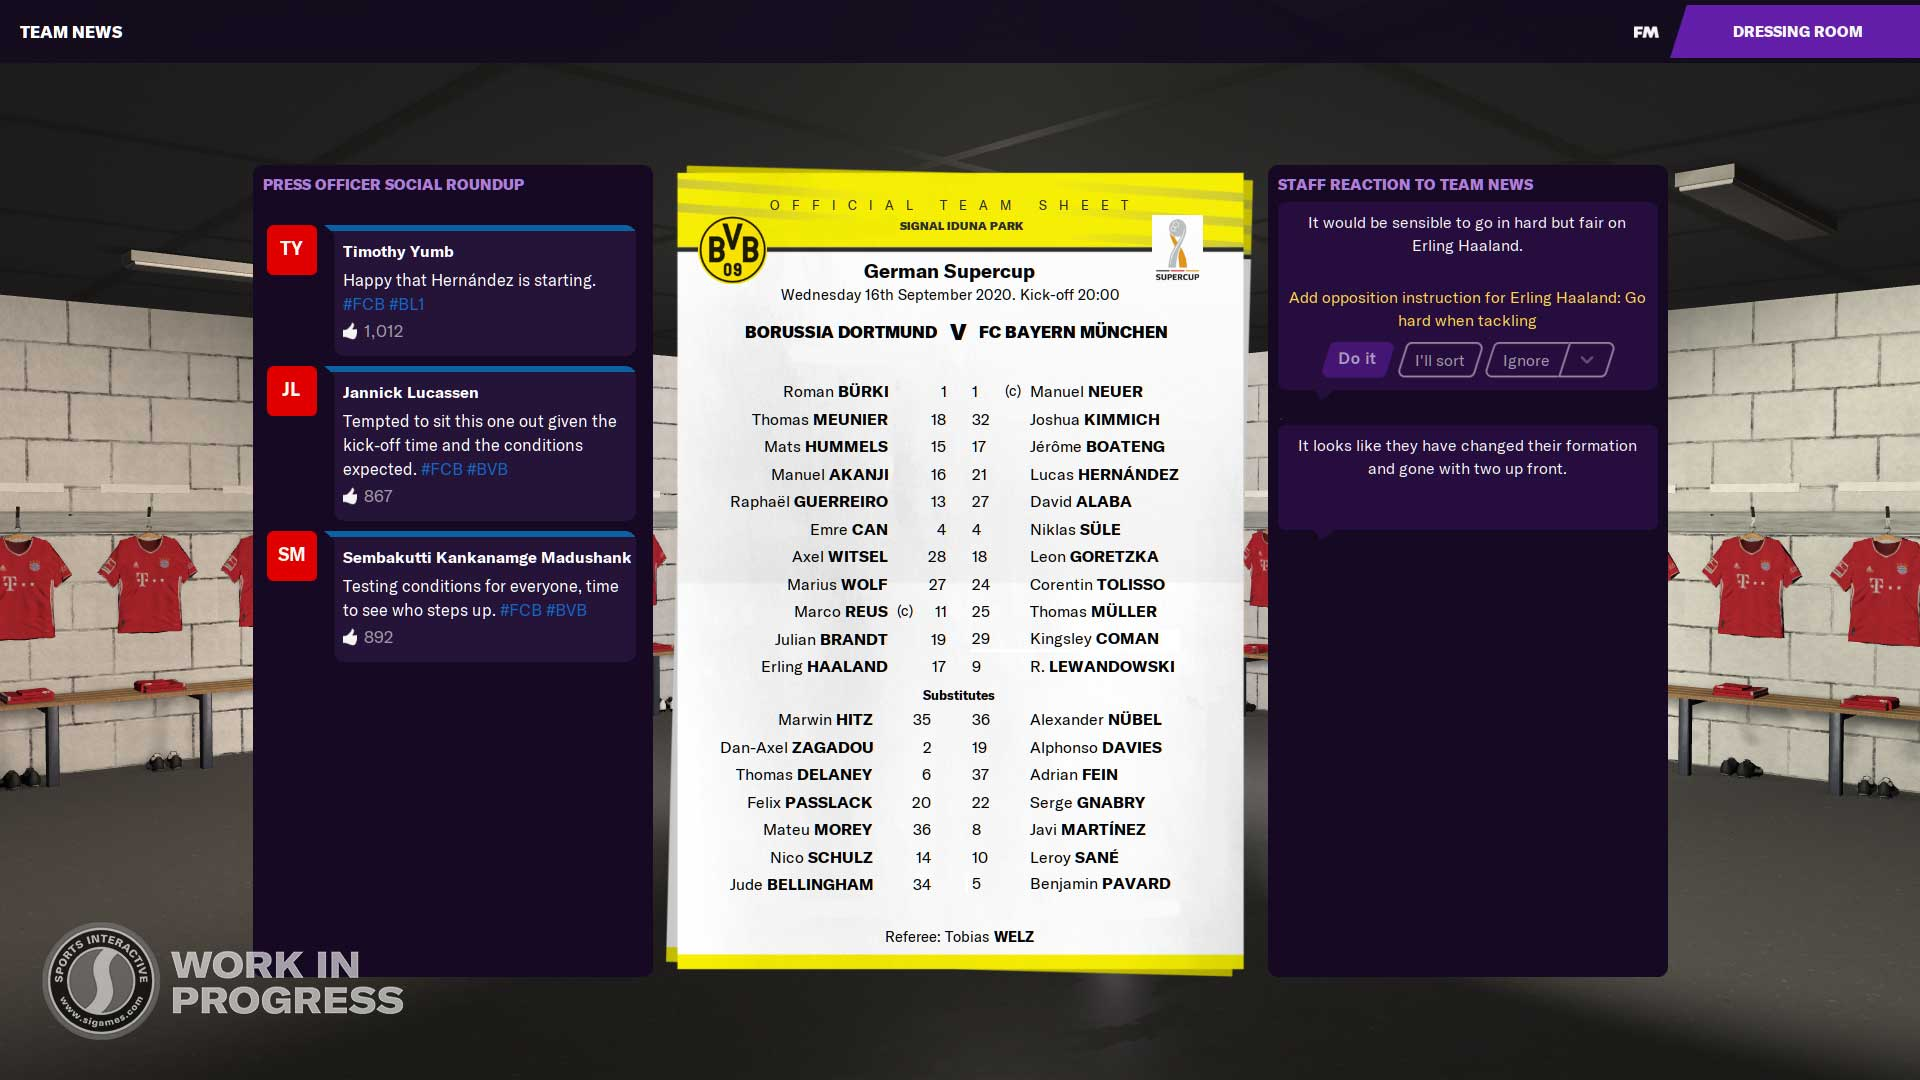 Pre-match Build Up - Team Sheets